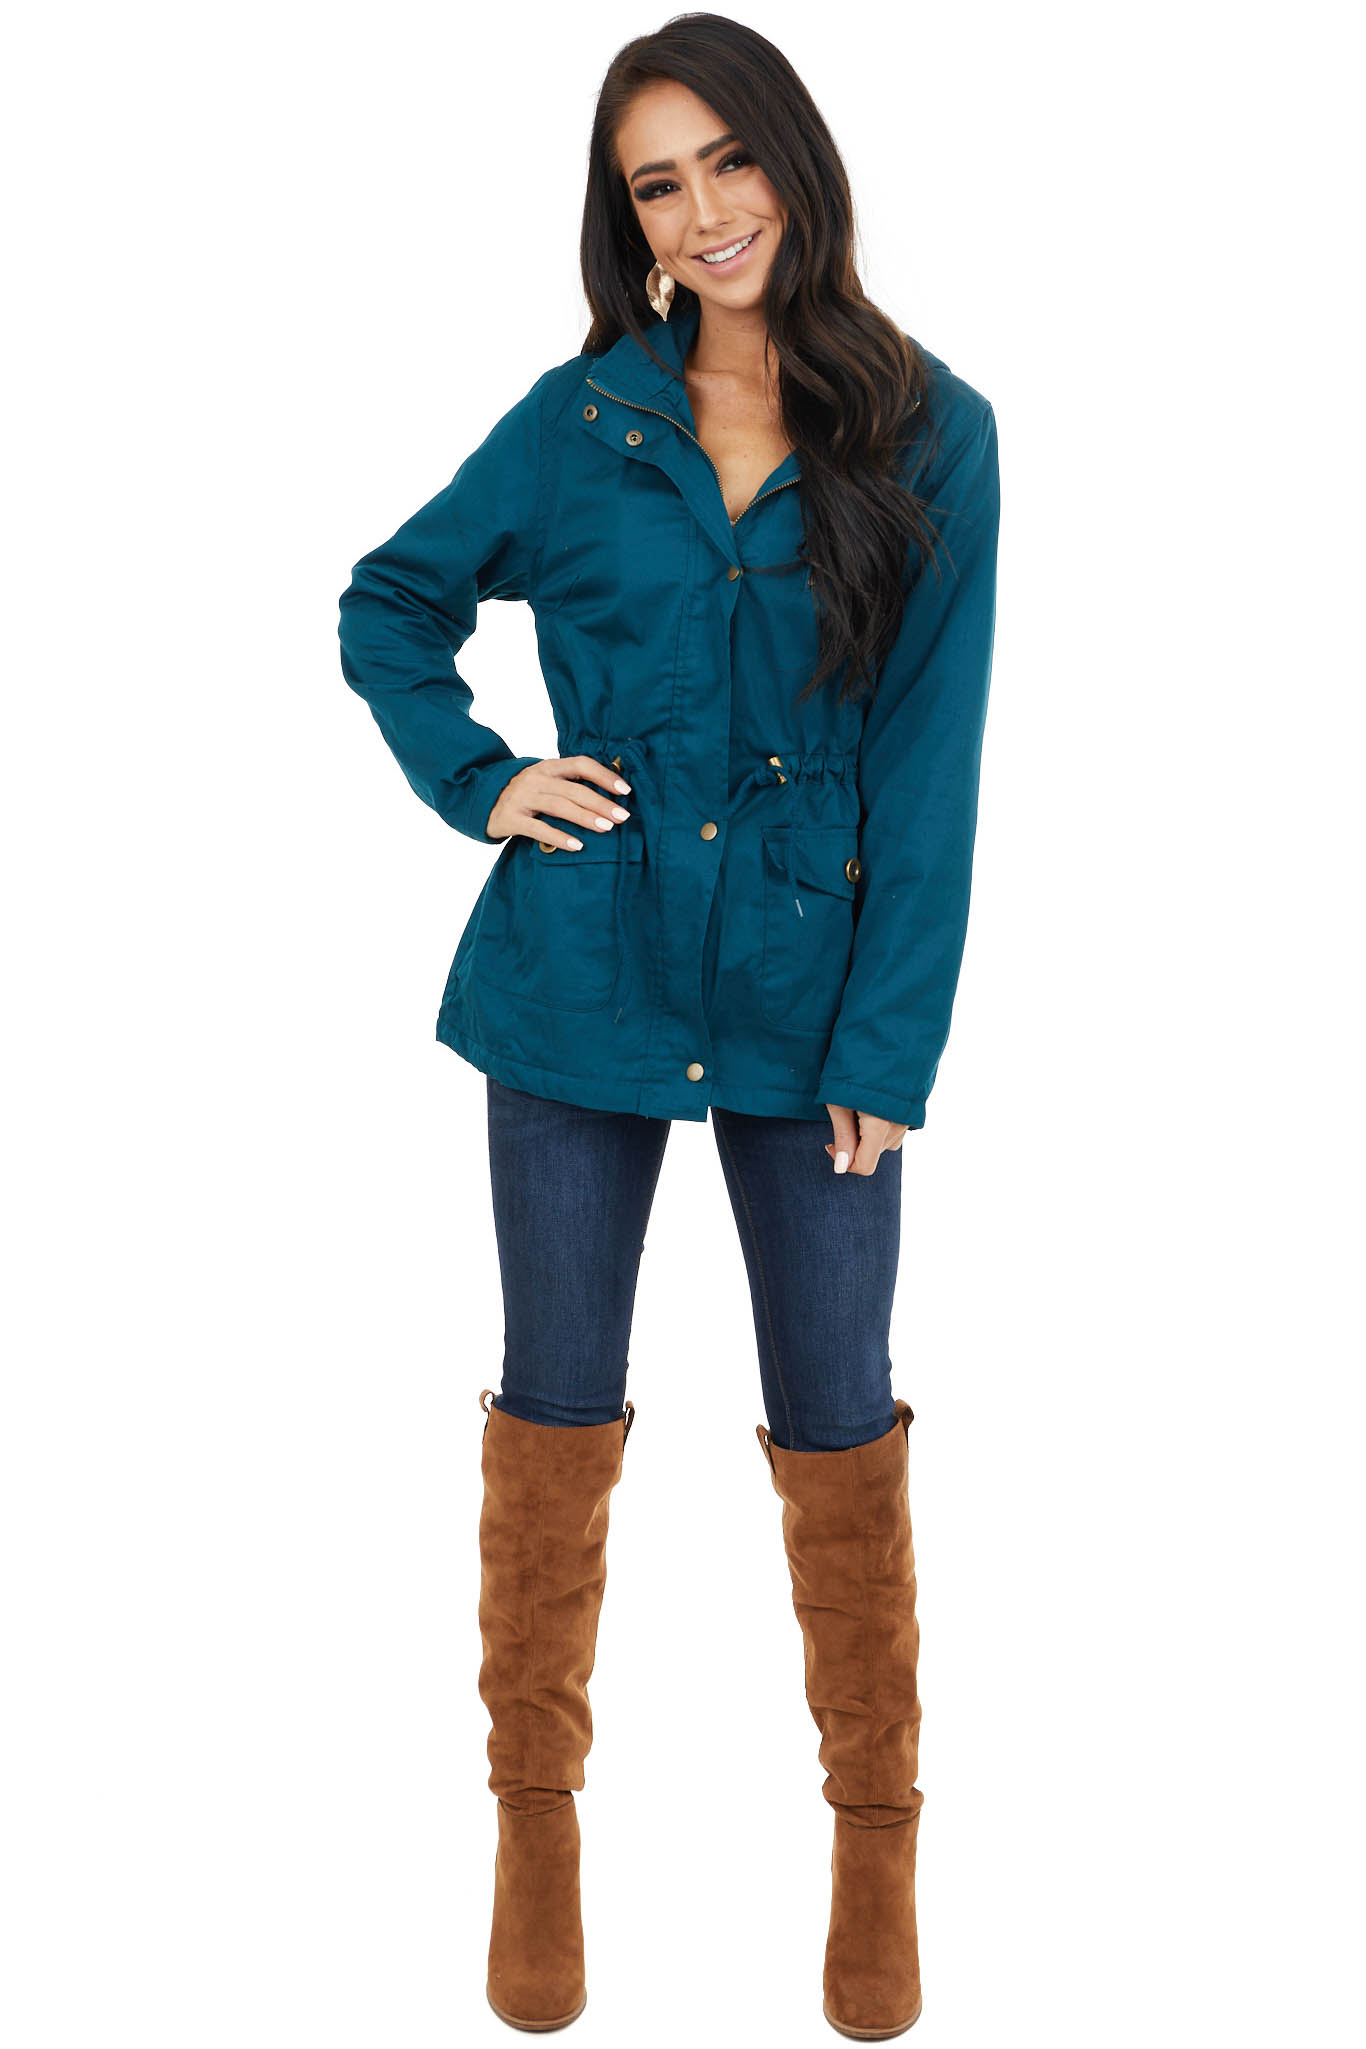 Dark Teal Anorak Jacket with Faux Fur Lining and Front Tie